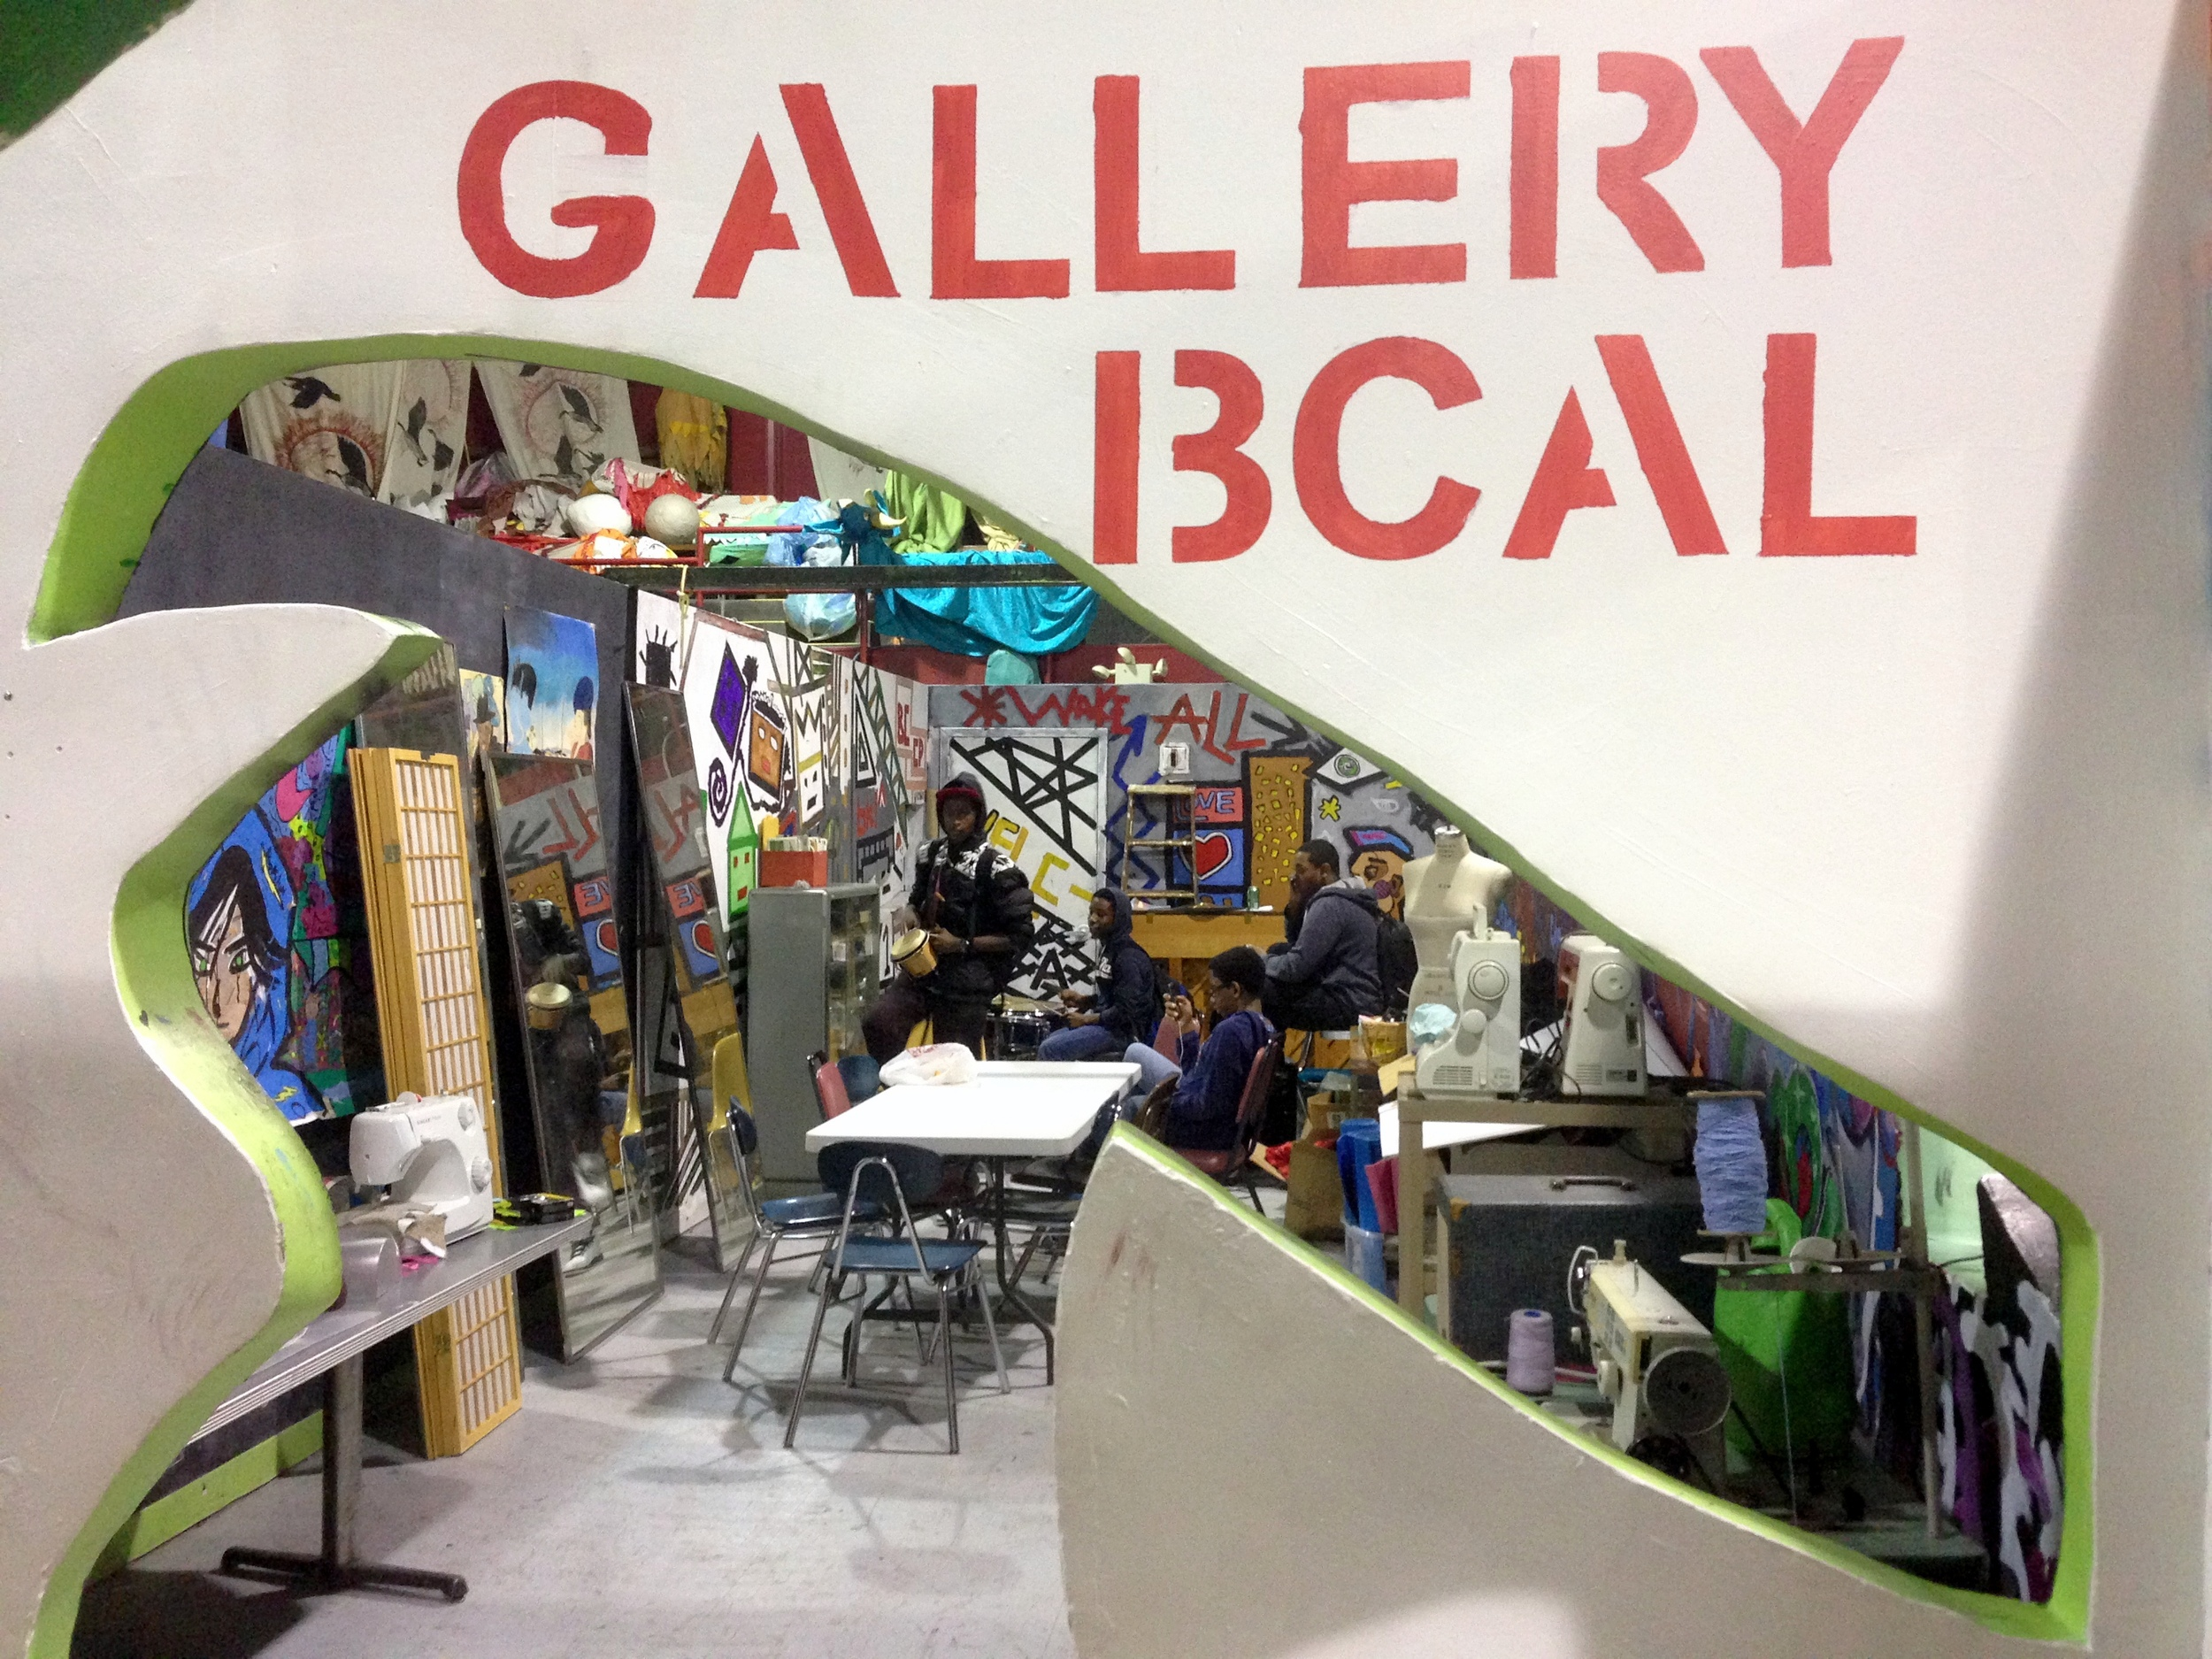 gallery bcal #1 for real.JPG